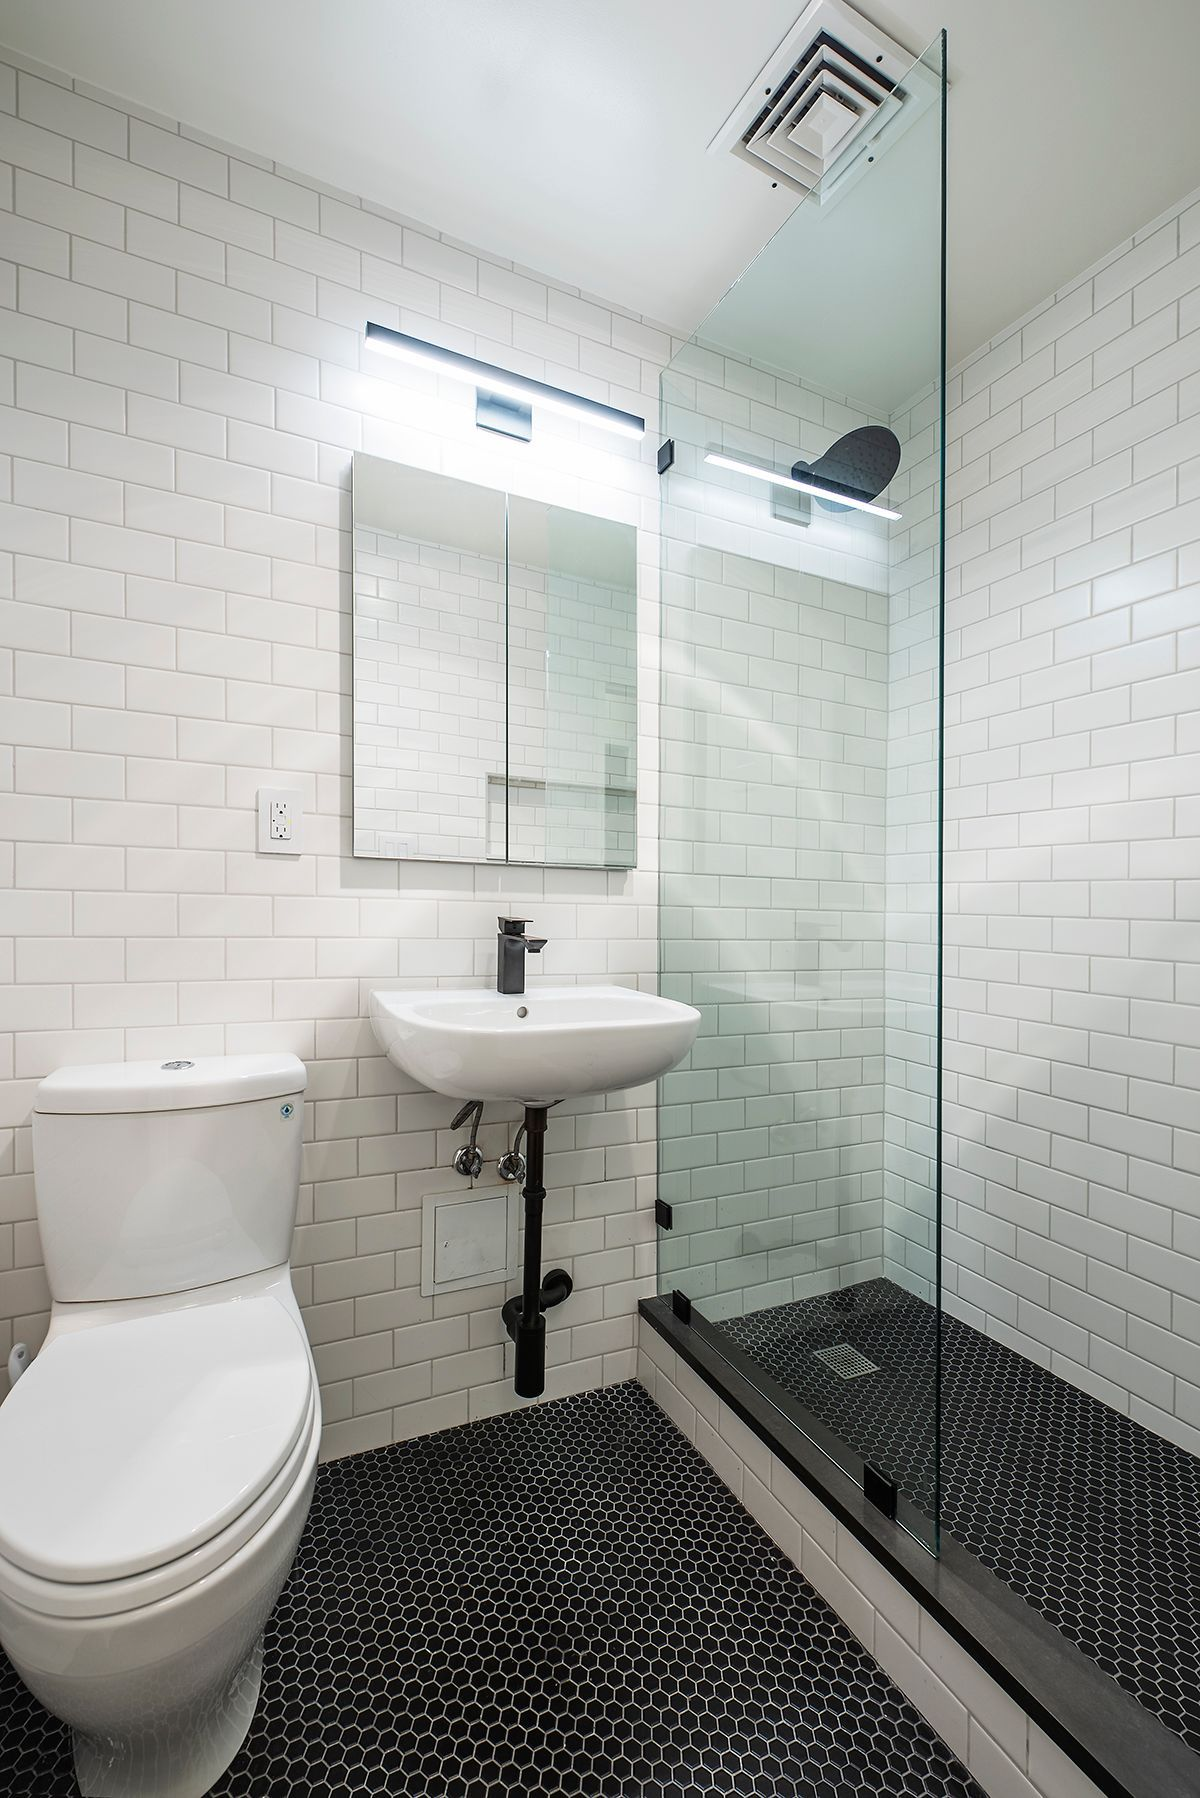 6 Design Tricks For Small Bathrooms Nyc Homeowners Will Love In 2021 Small Bathroom Bathrooms Remodel Kitchen Bathroom Remodel Nyc small bathroom design